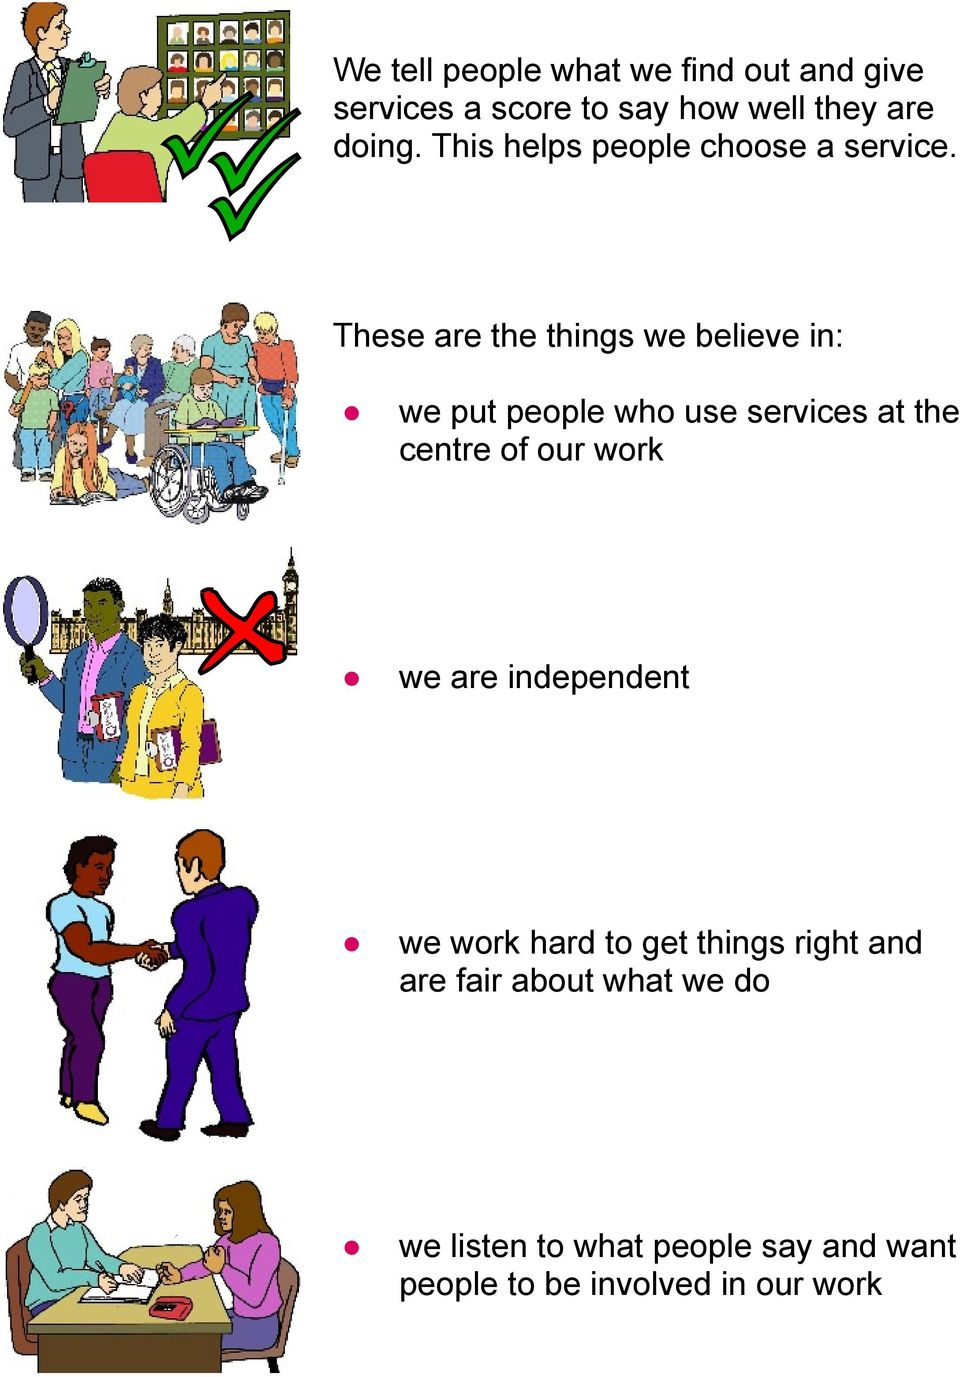 These are the things we believe in: we put people who use services at the centre of our work